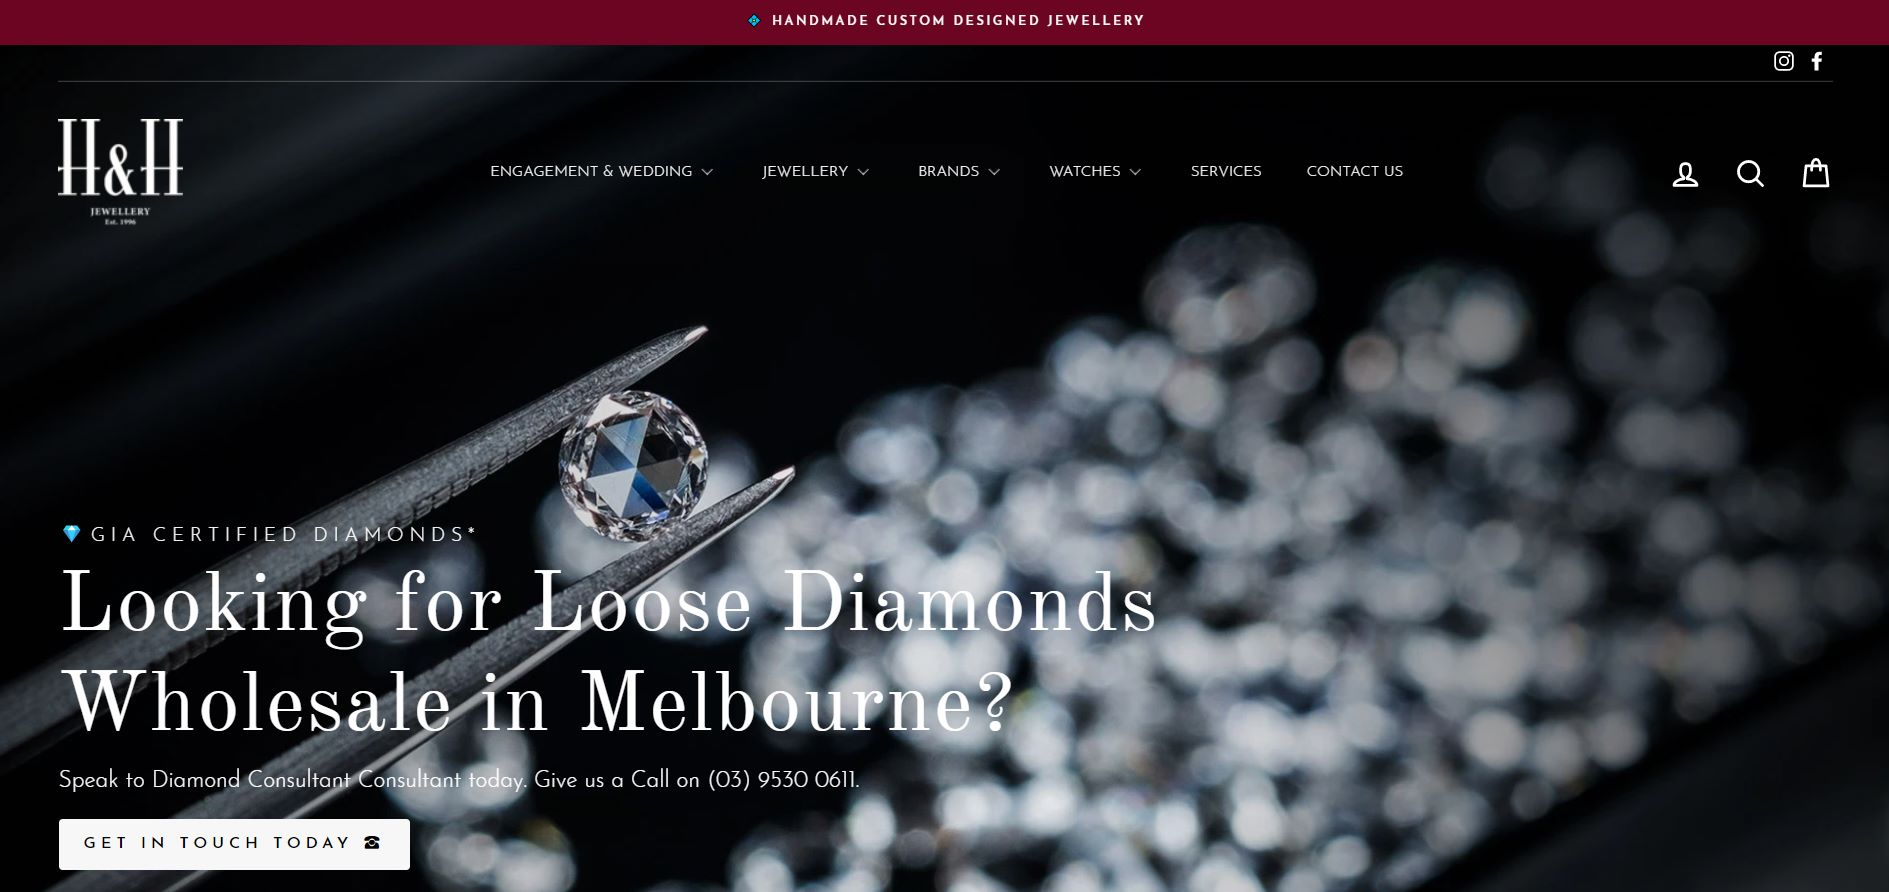 h&h jewellery stores melbourne